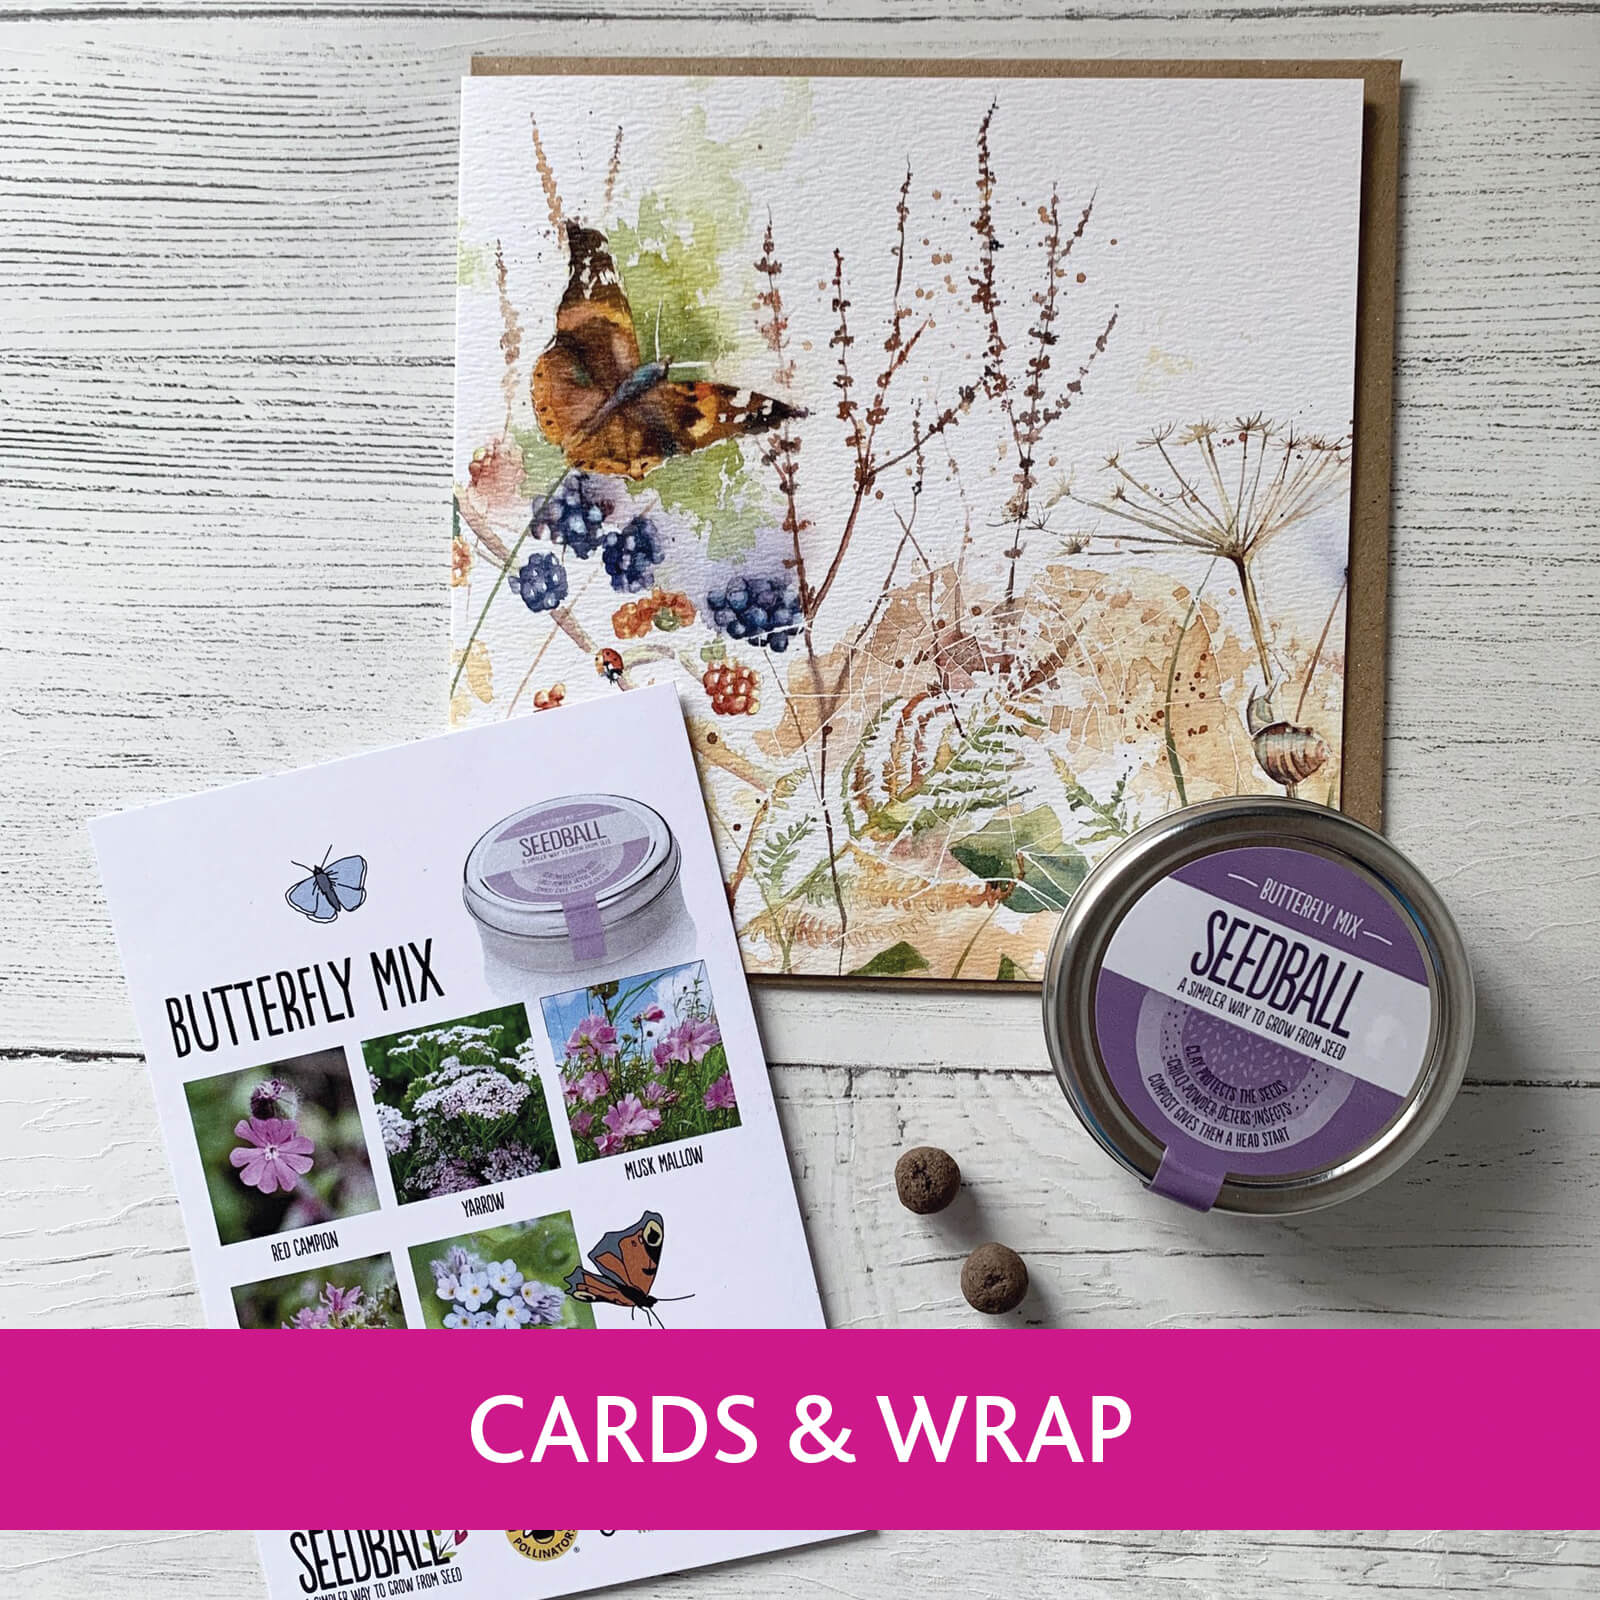 Ferrers Gallery, unique and handcrafted British made Cards and Wrap Collection